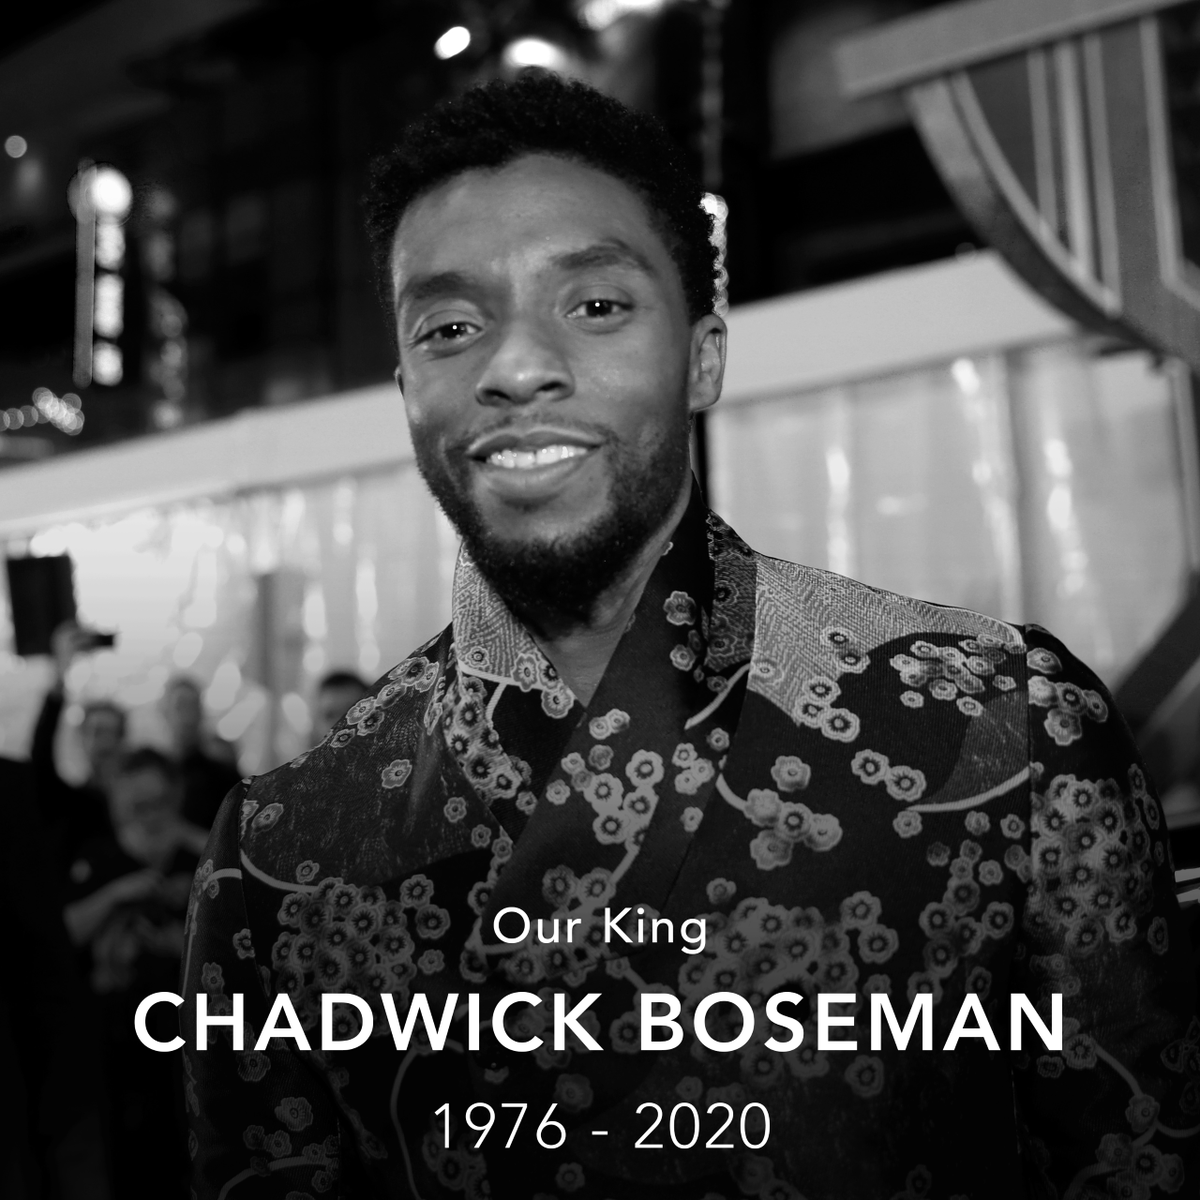 Tonight, ABC will celebrate the legacy of Chadwick Boseman with a special presentation of Marvel Studios' Black Panther followed by the ABC News Special: Chadwick Boseman - A Tribute for a King. It all starts tonight at 8/7c on ABC. https://t.co/dVpYa0RM6b